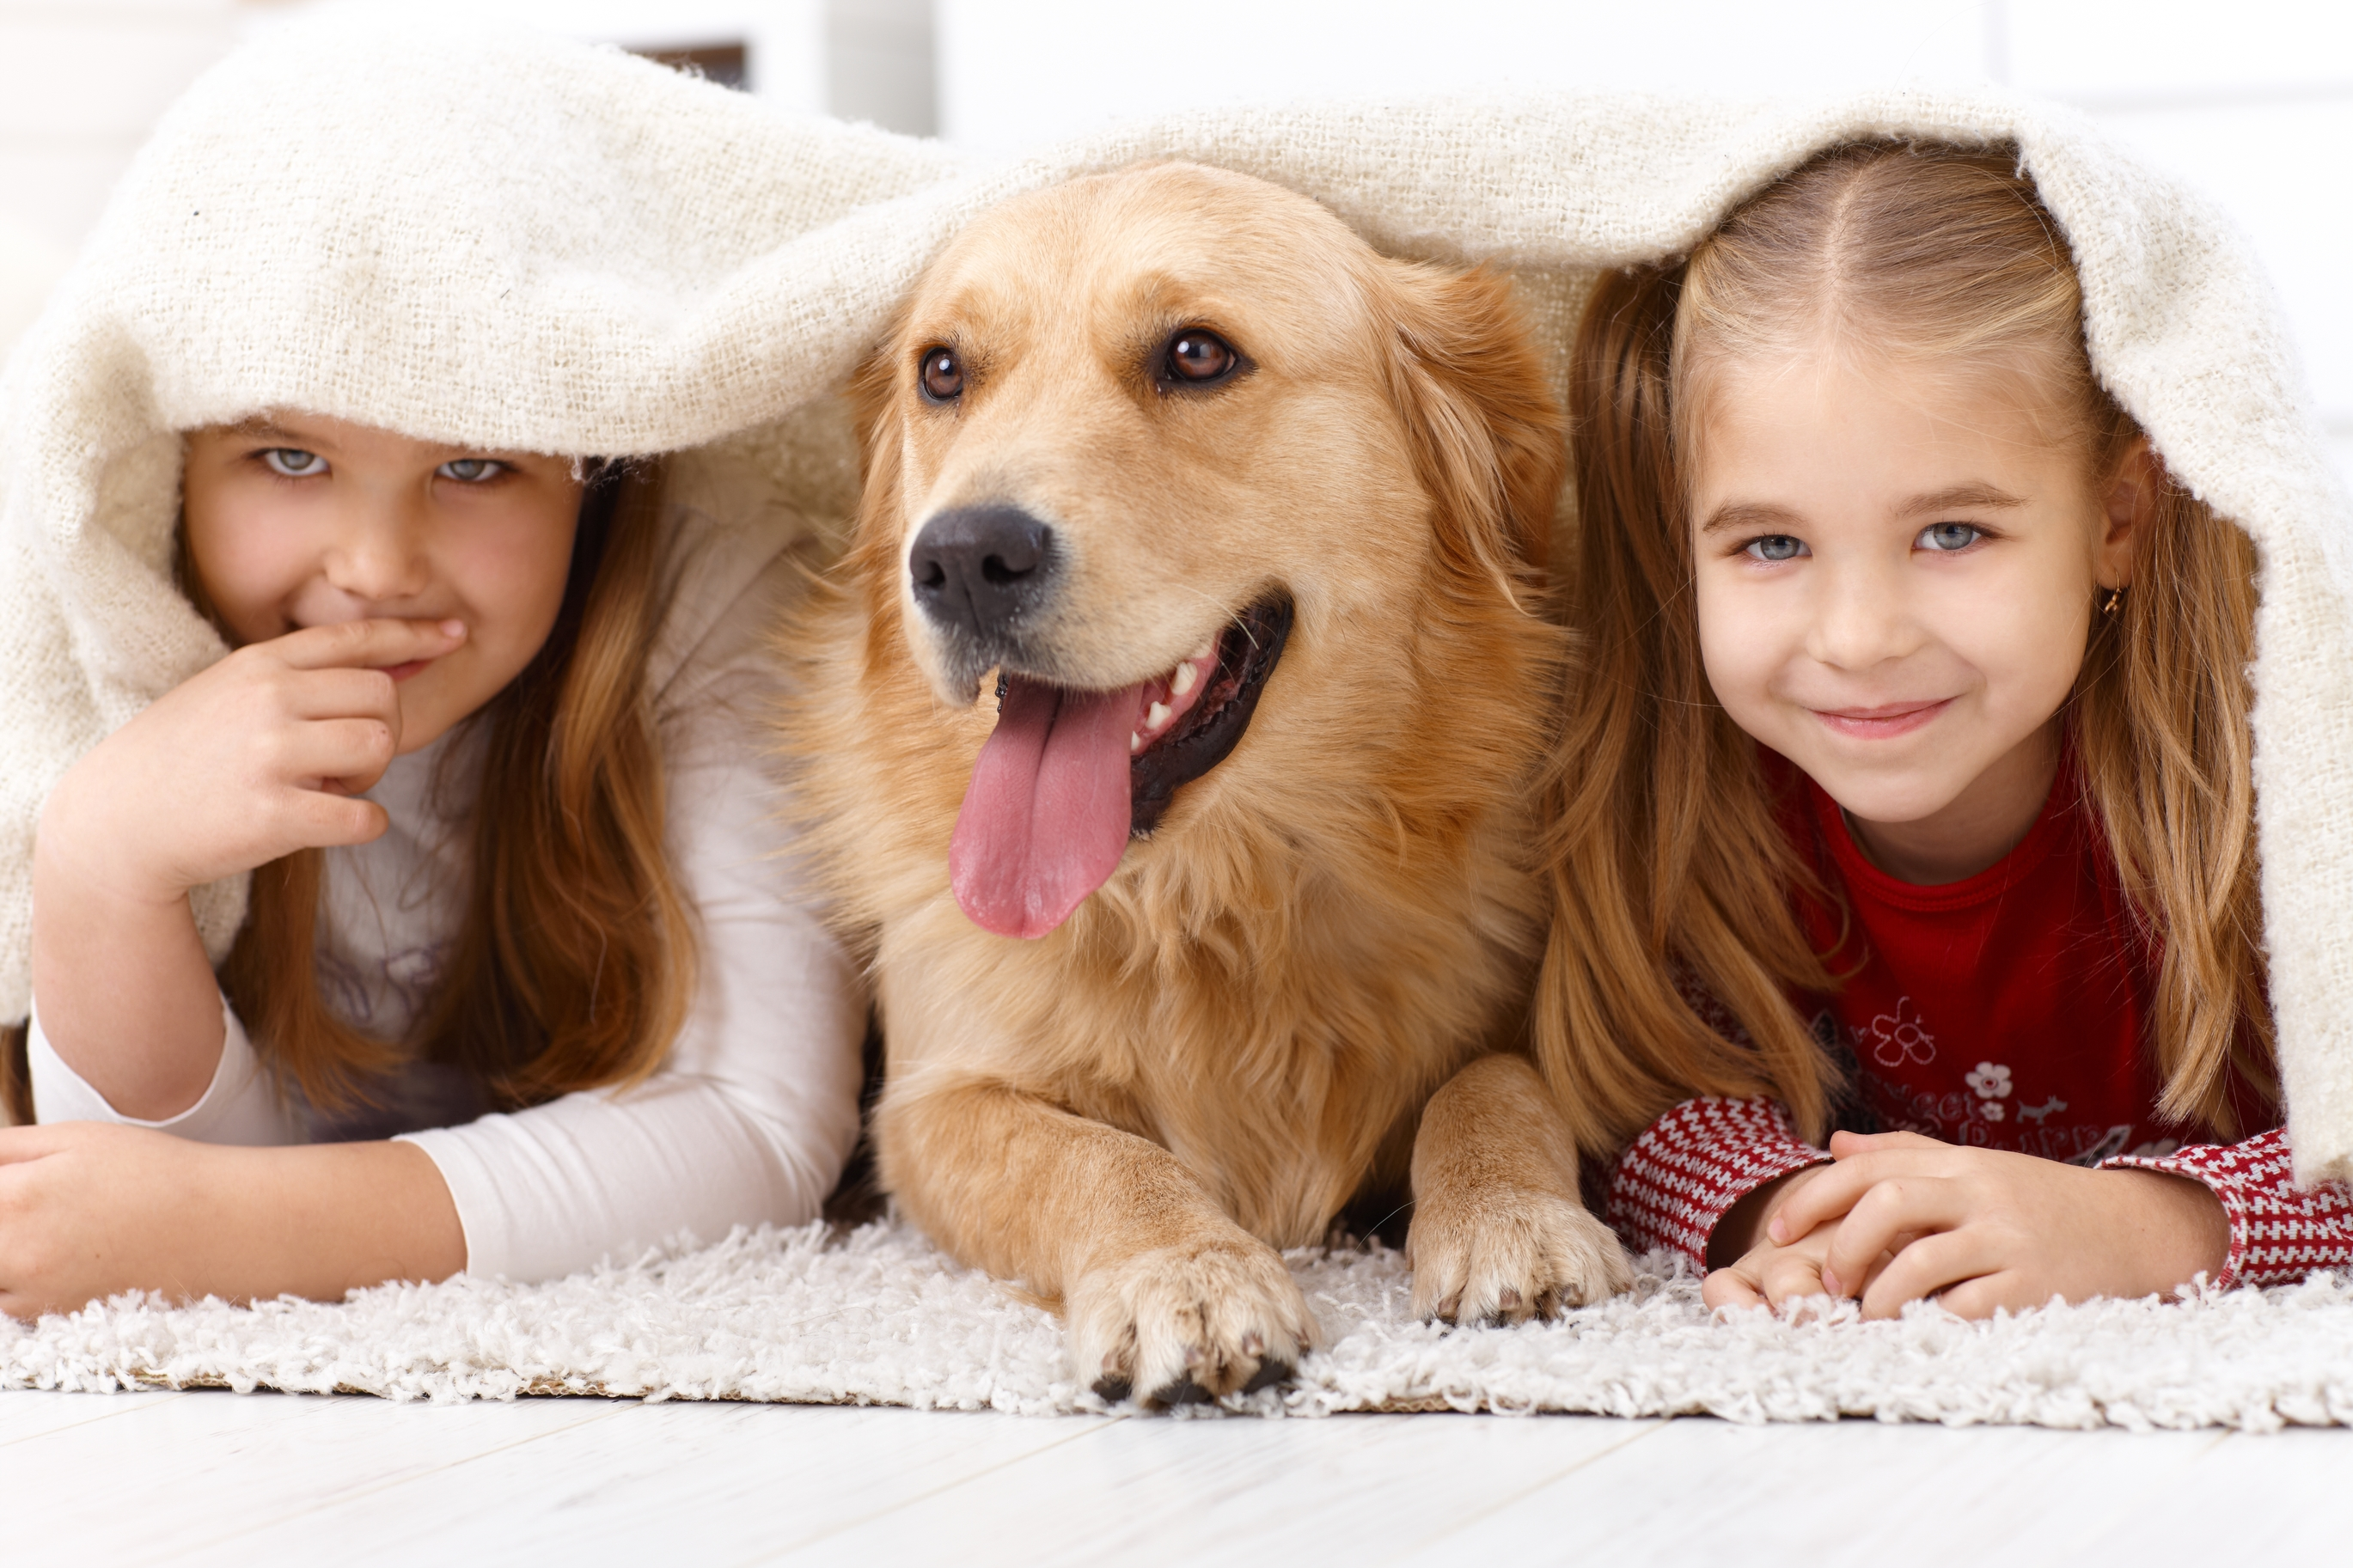 two girls and a brown dog covering in a white blanket